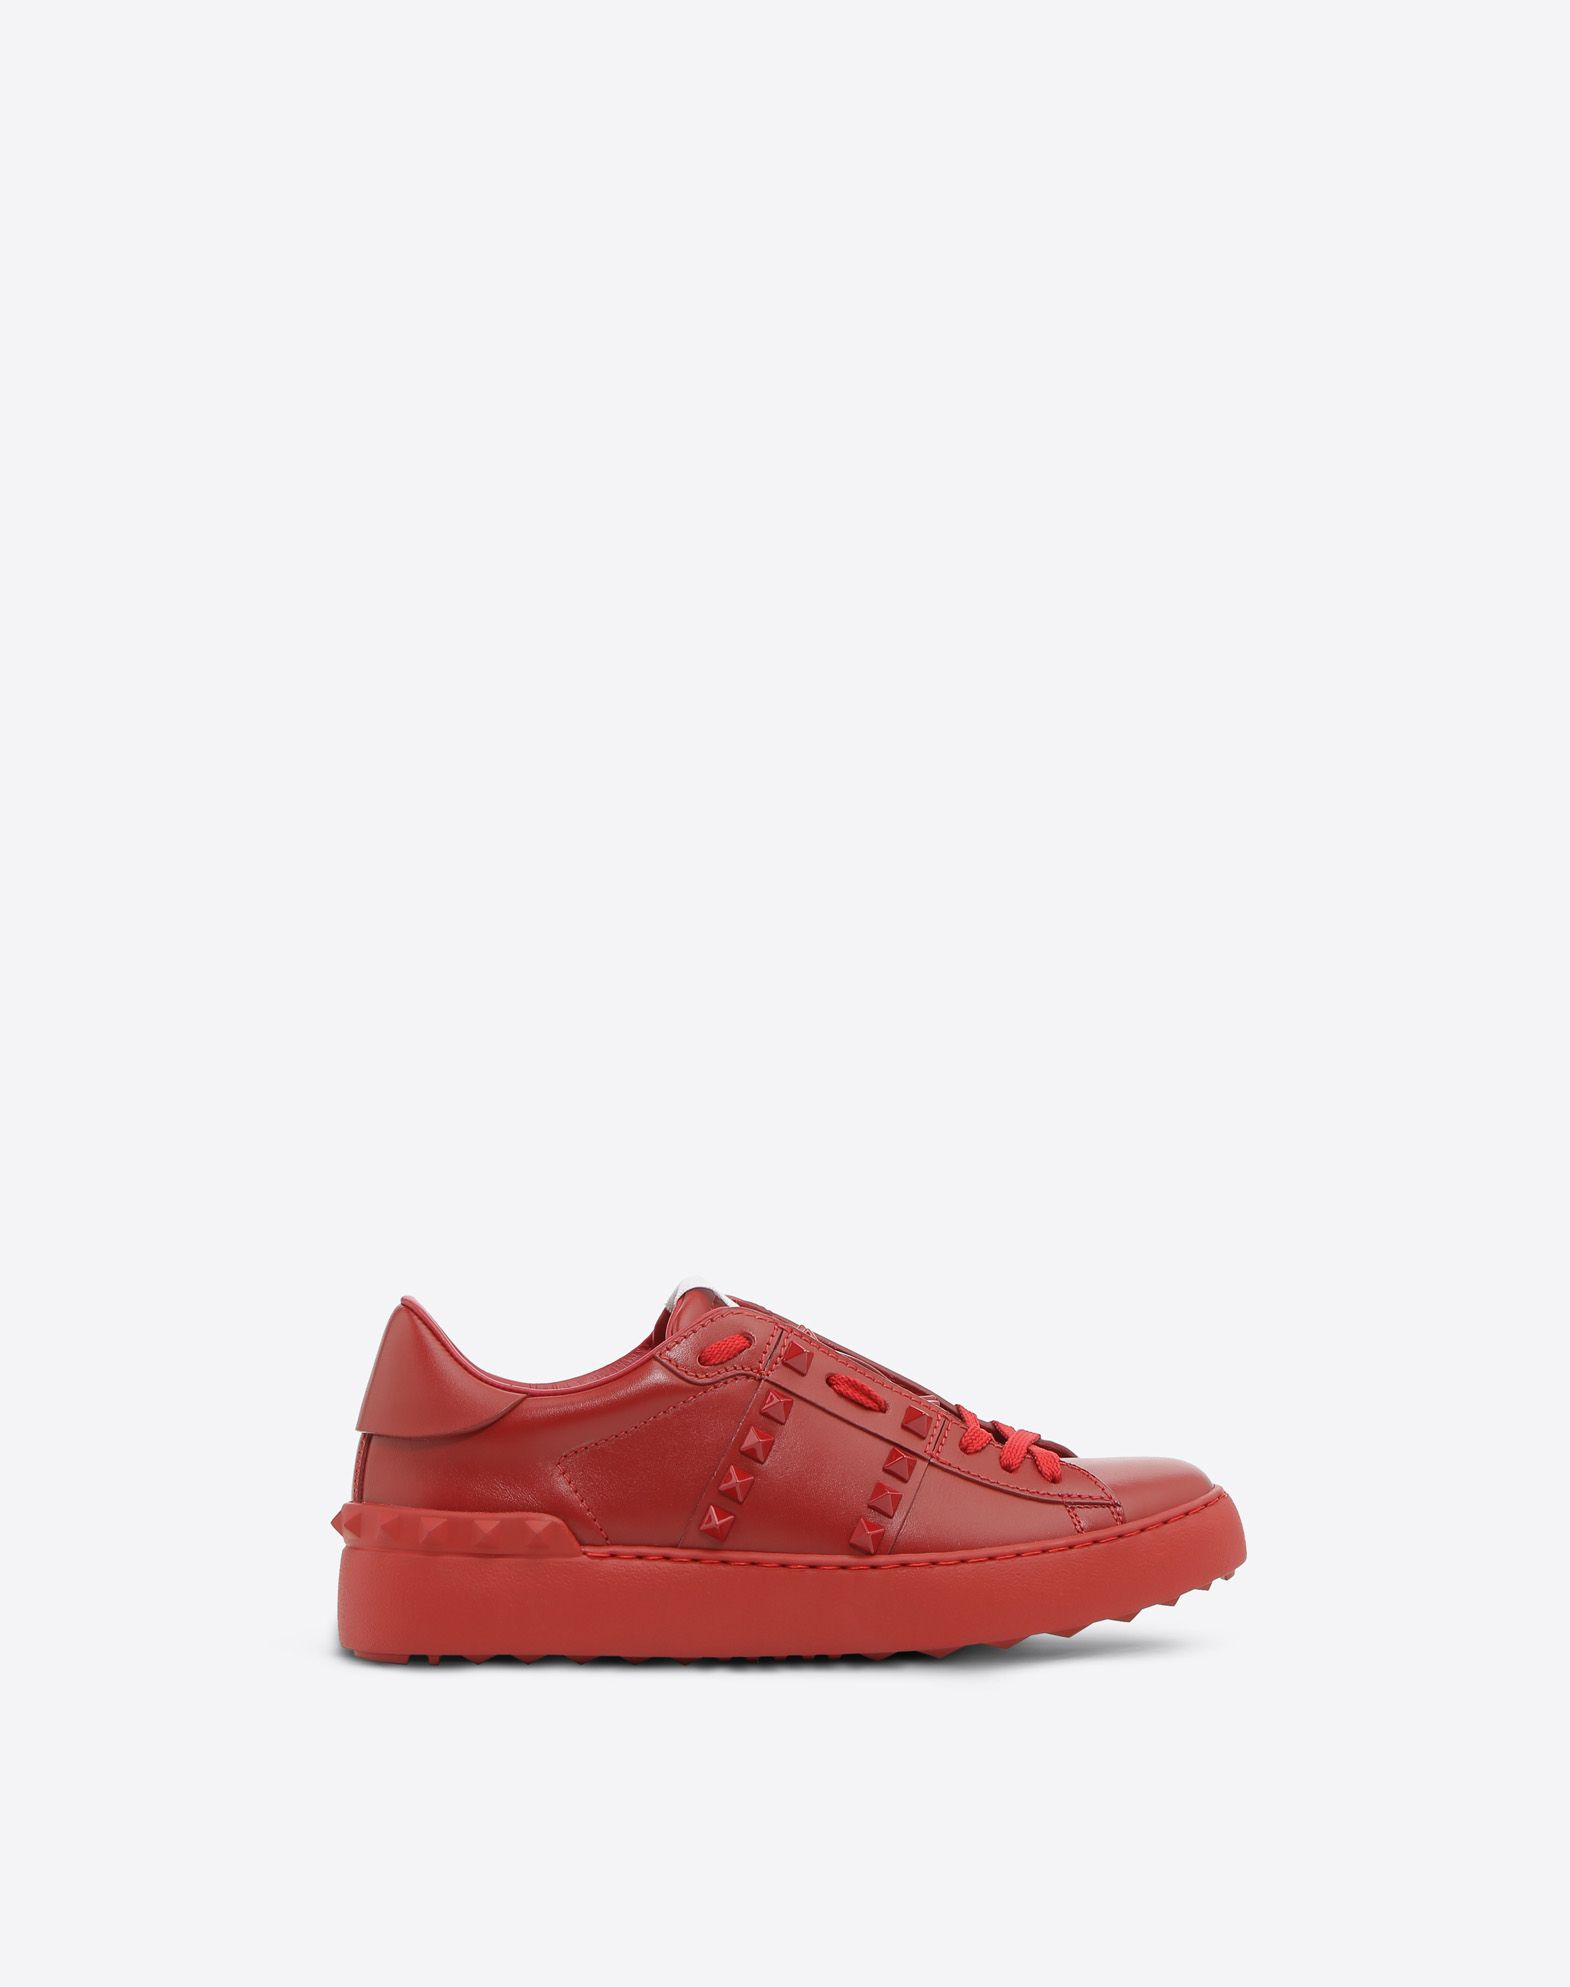 VALENTINO GARAVANI Rockstud Untitled Rosso Sneaker LOW-TOP SNEAKERS D f